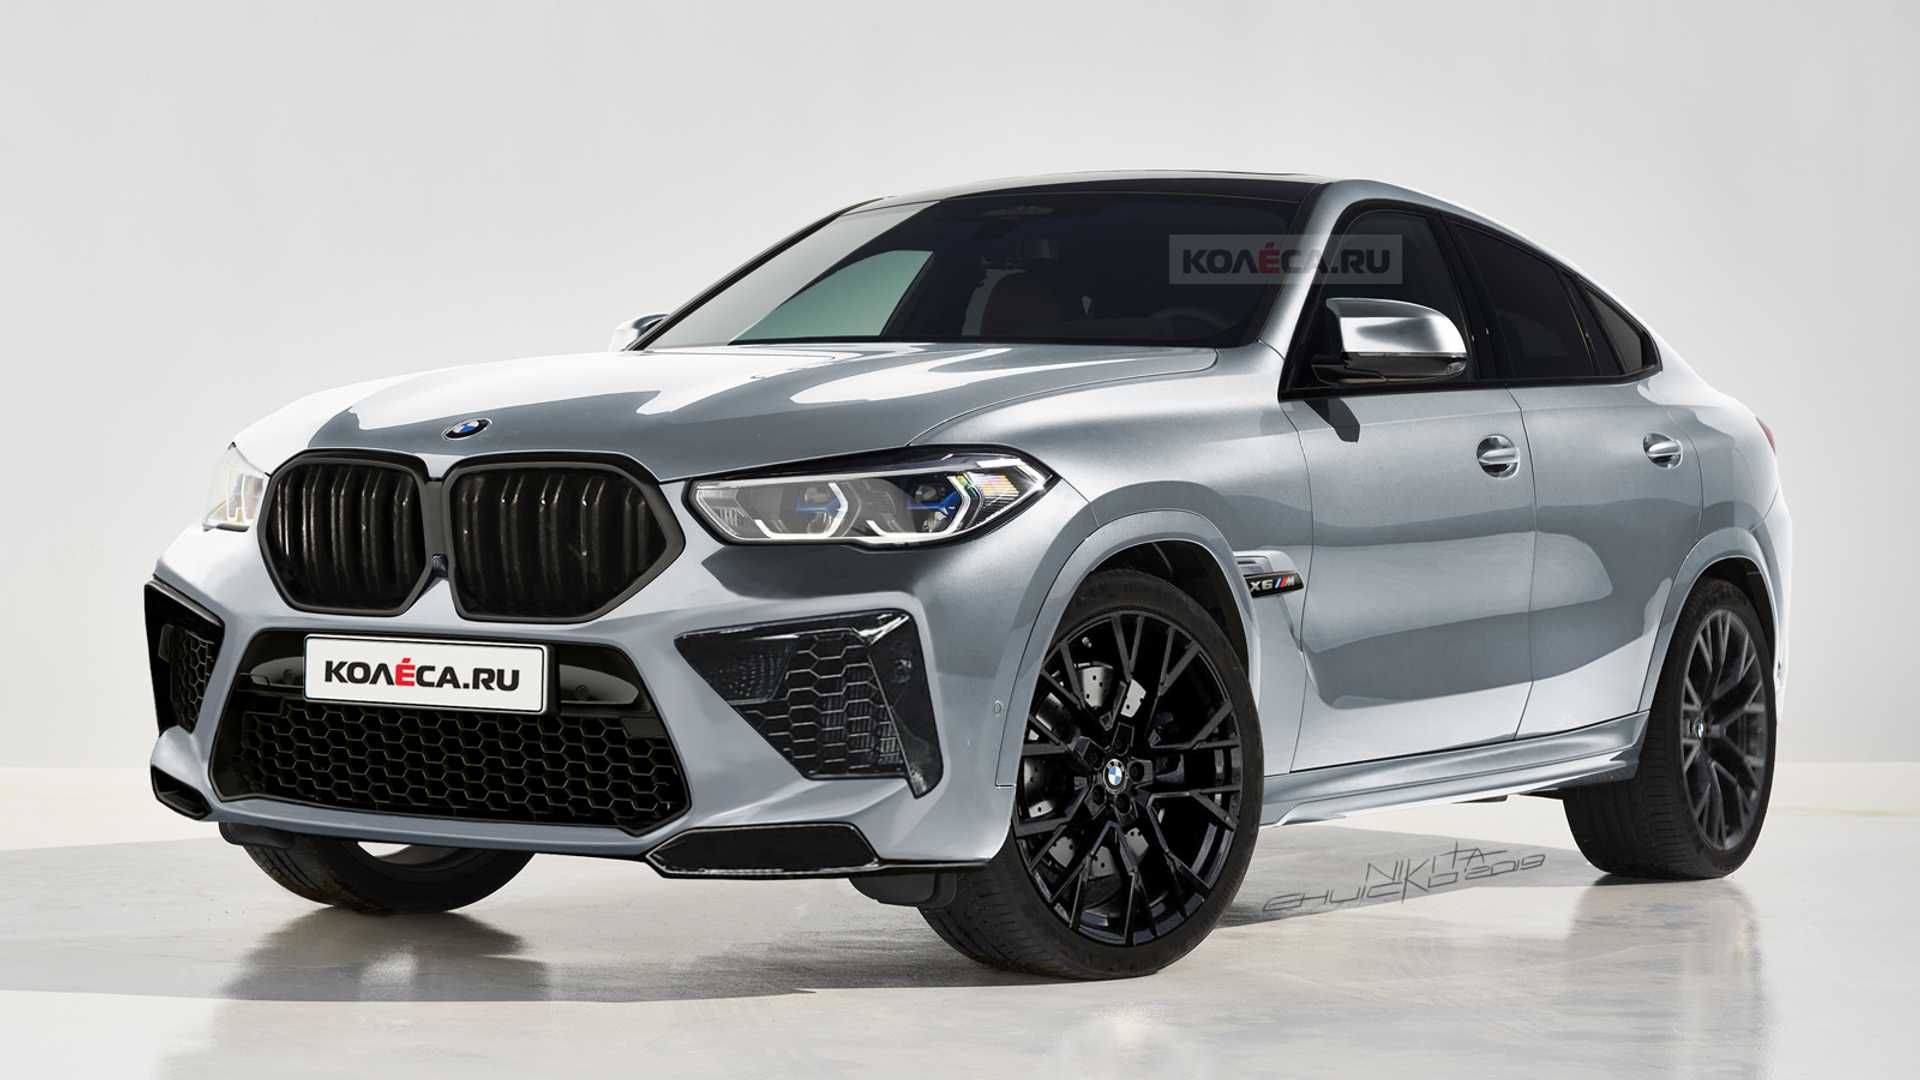 Upcoming Bmw X6 M Gets Rendered Based On The New X6 With Images